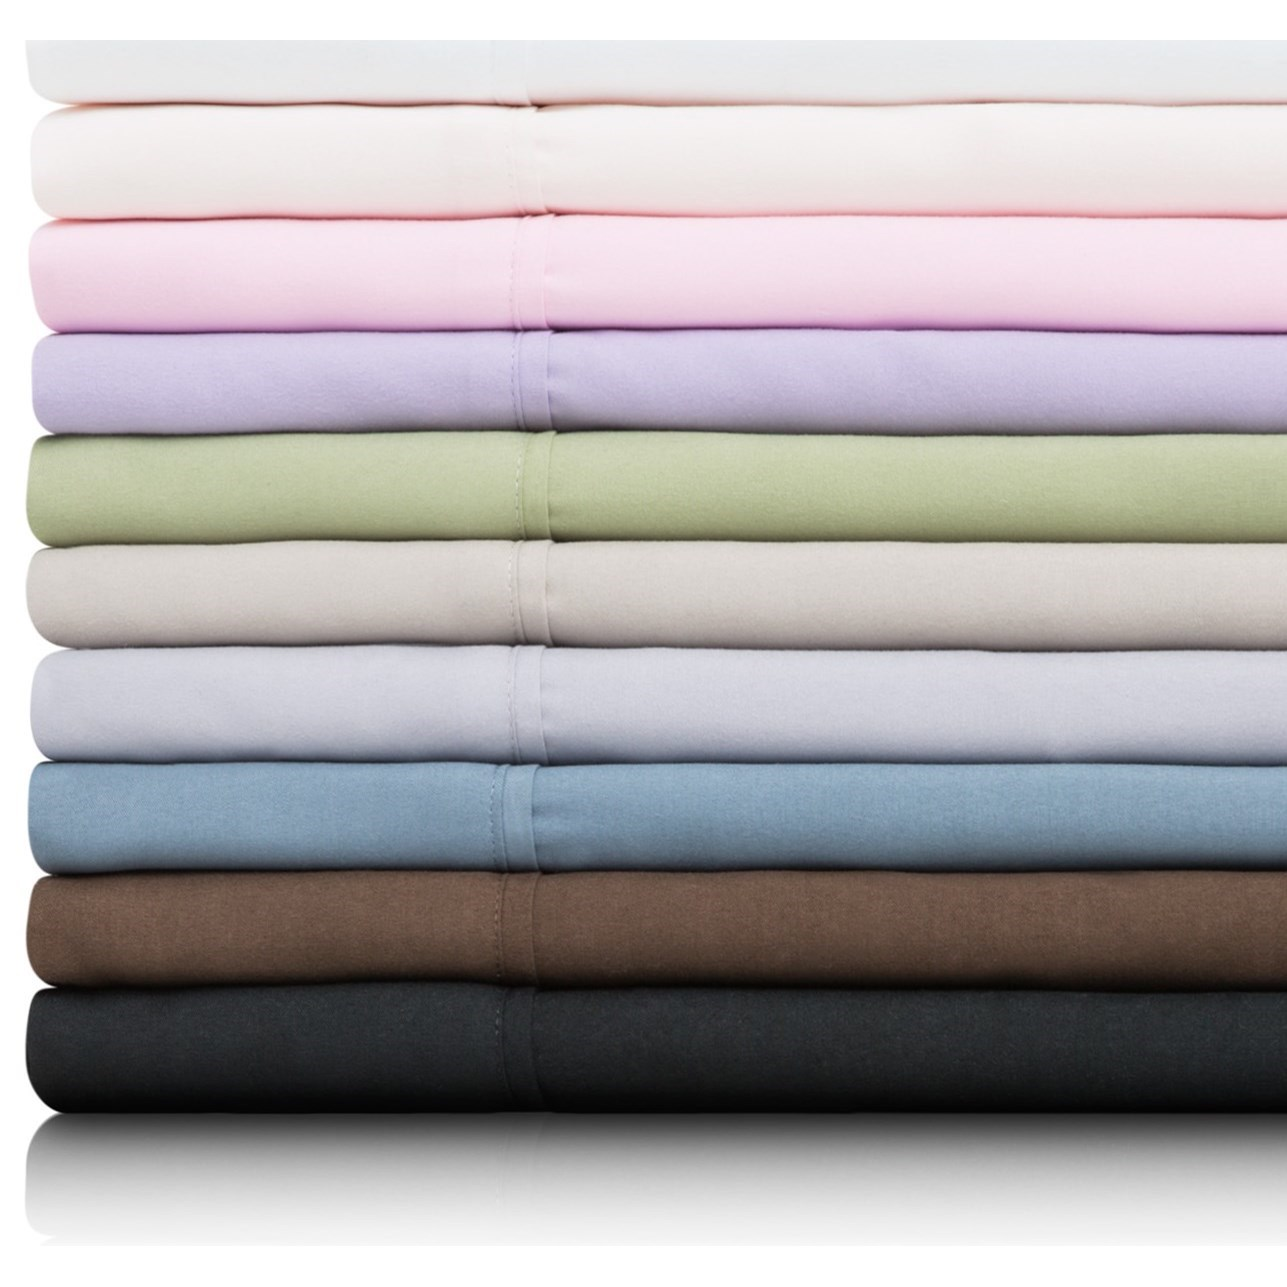 Malouf Brushed Microfiber Twin Woven™ Brushed Microfiber Sheet Set - Item Number: MA90TTFEMS